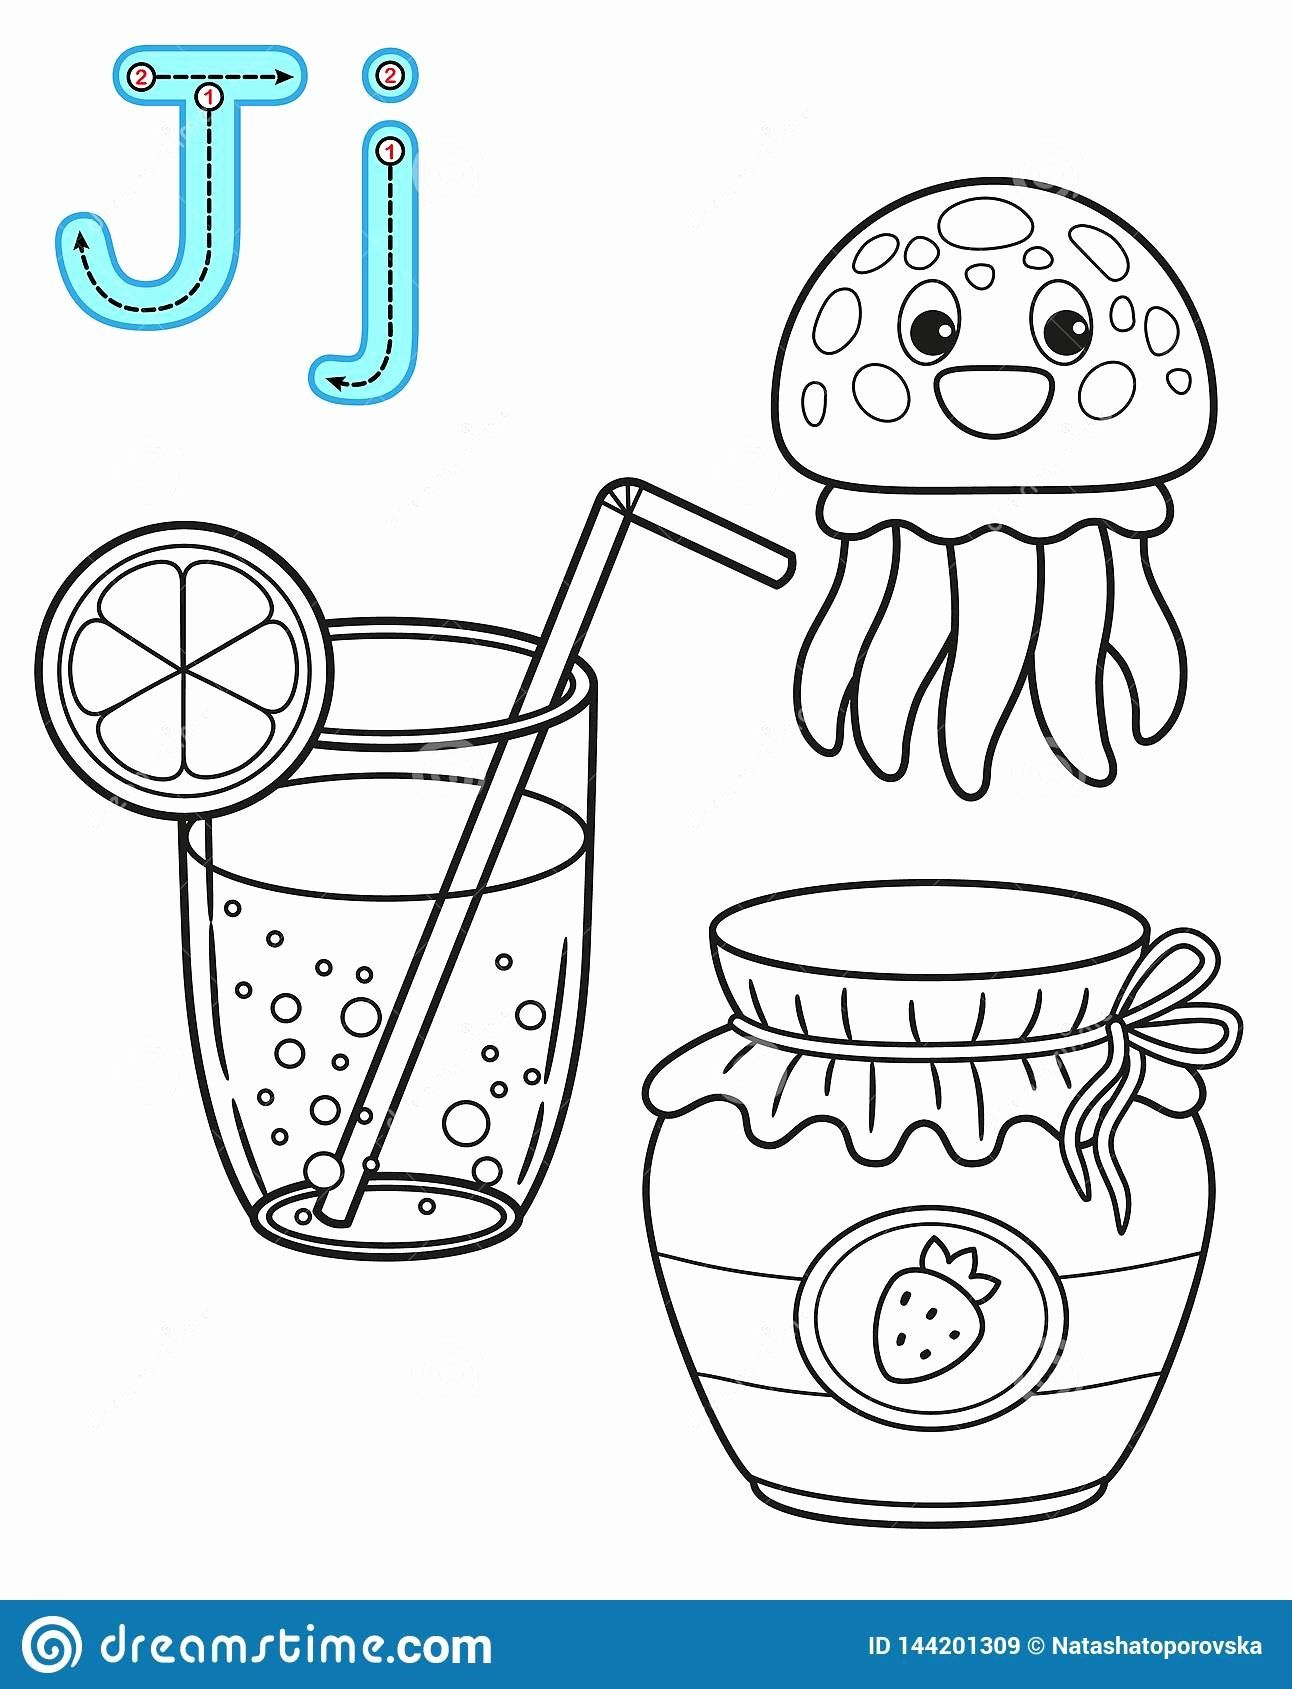 Pre School Coloring Book Best Of Coloring Page For Kids